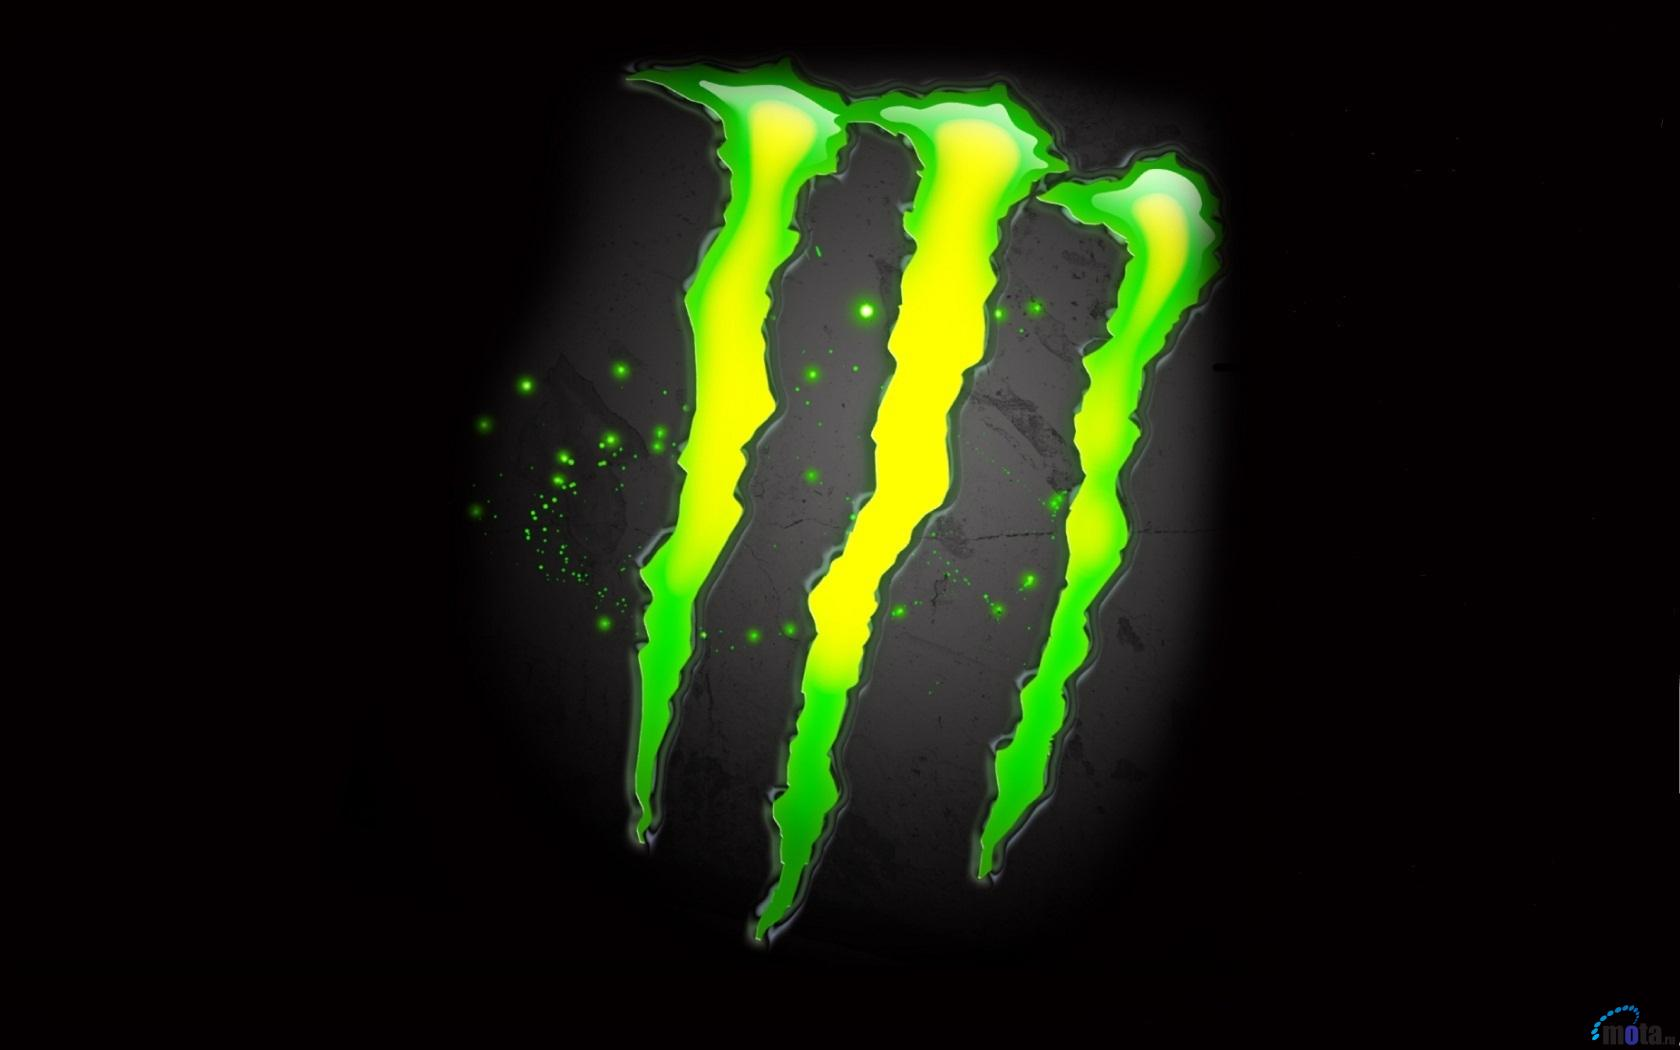 Wallpaper Monster Energy logo 1680 x 1050 widescreen Desktop 1680x1050